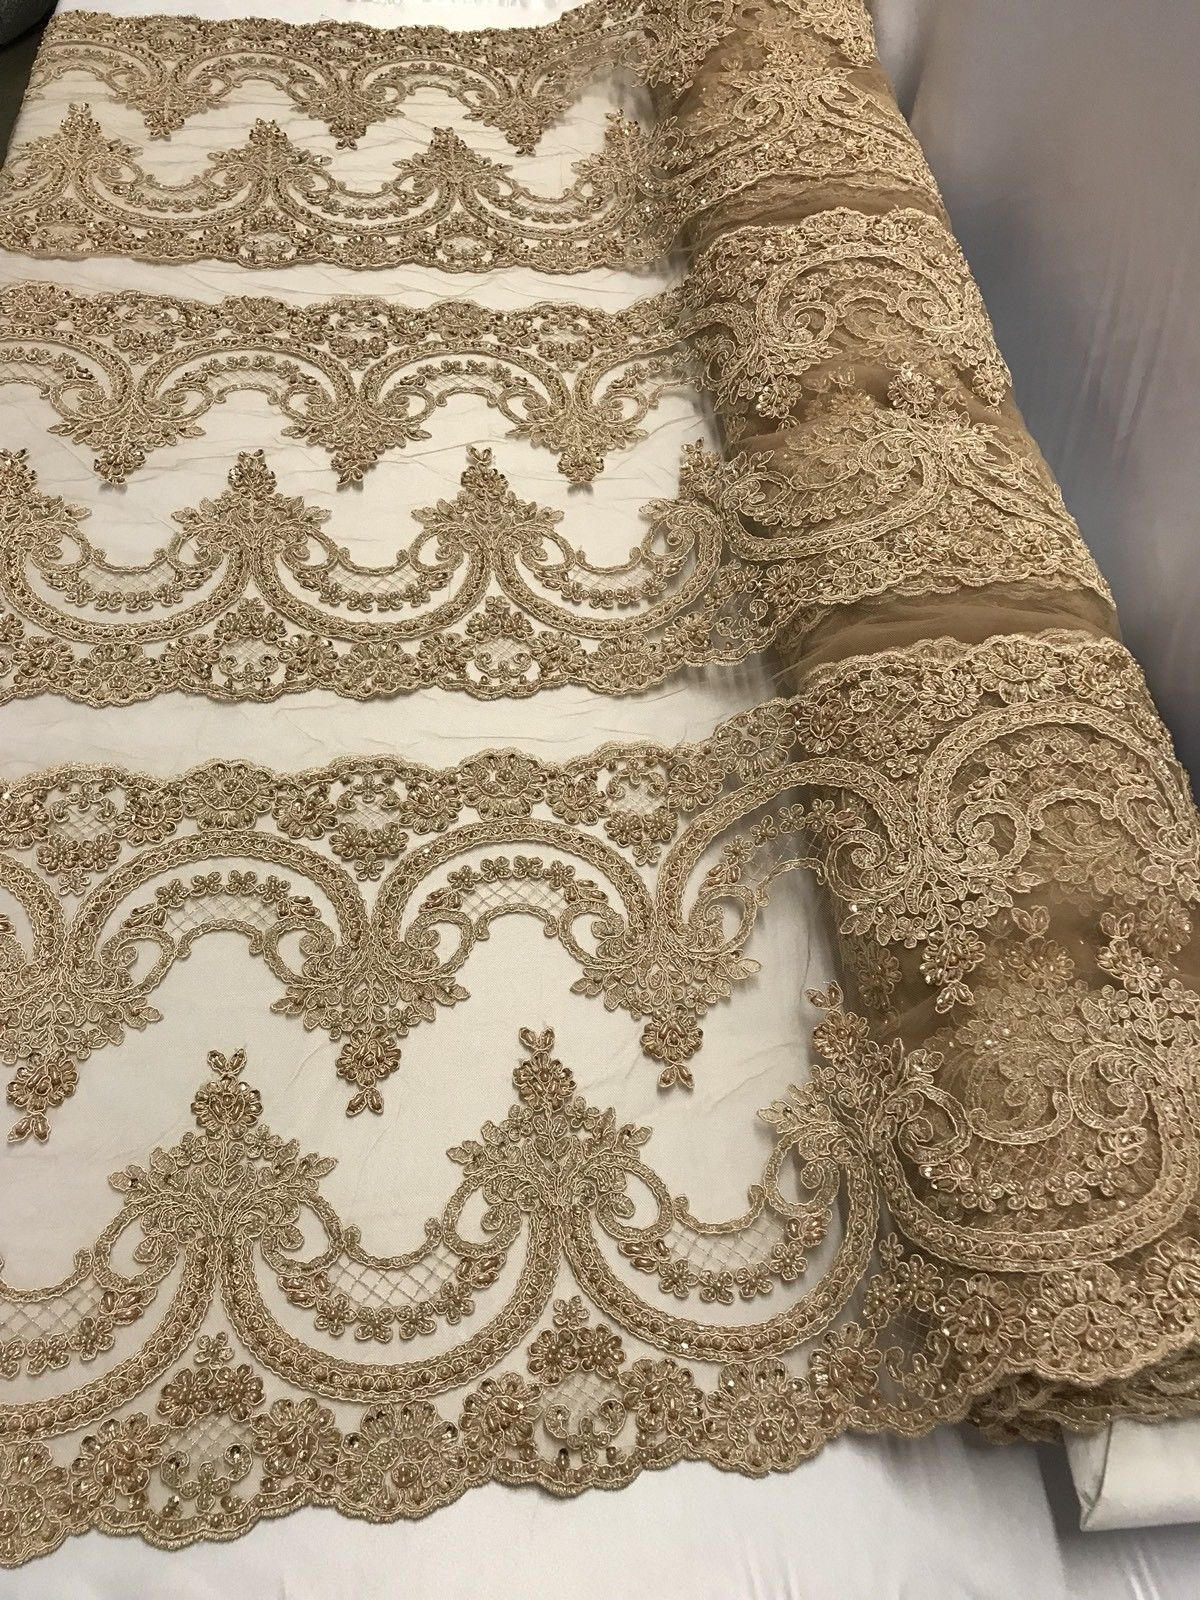 Lace Fabric Beaded Trim Sewing Skin Trimming Edge Embroidered Wedding Craft Bridal Veil By The Yard - KINGDOM OF FABRICS